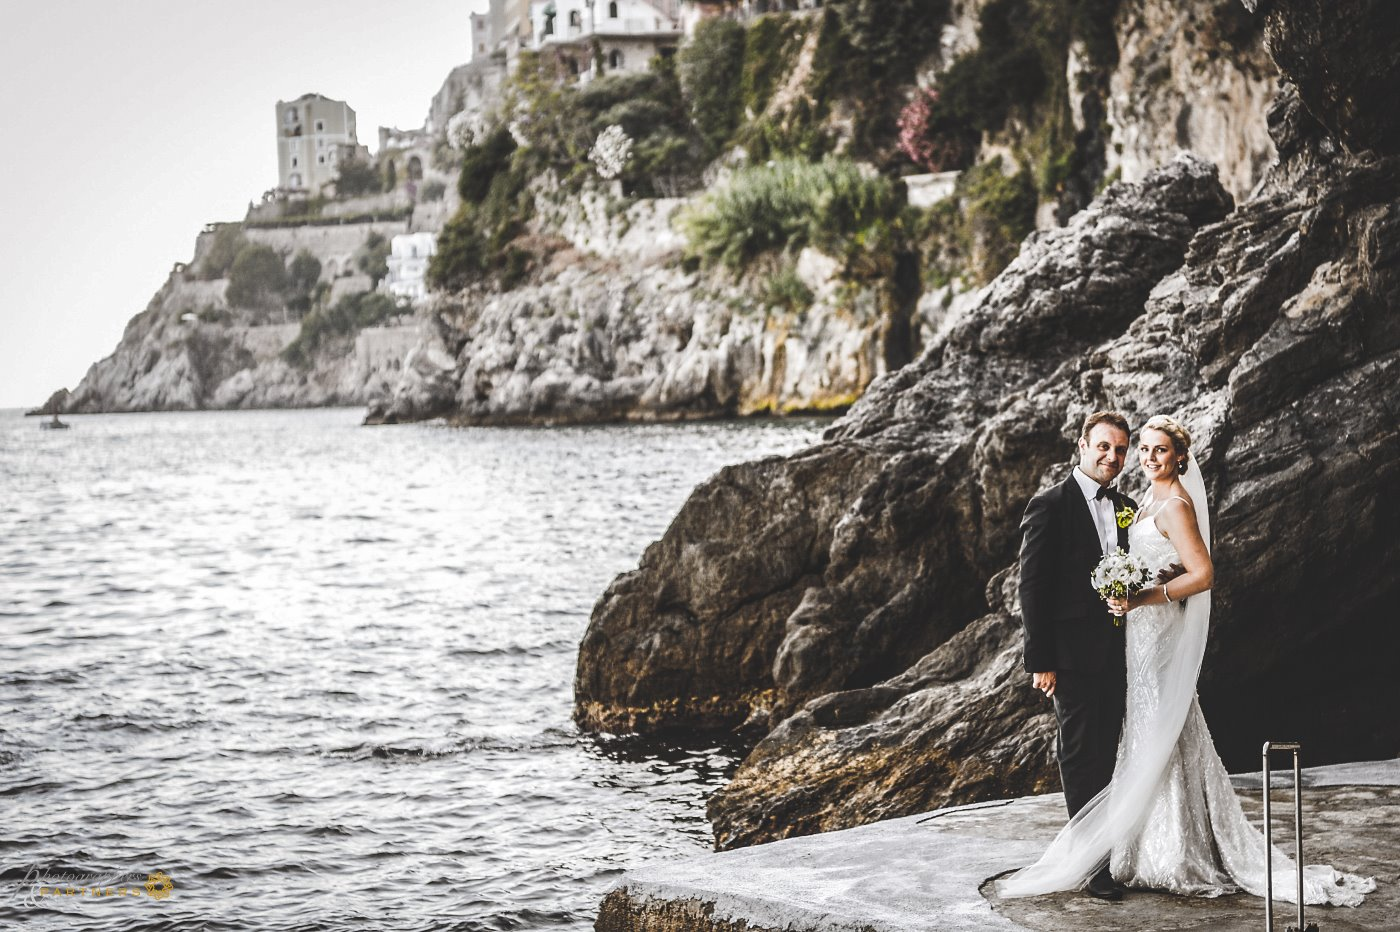 photographer_weddings_ravello_18.jpg